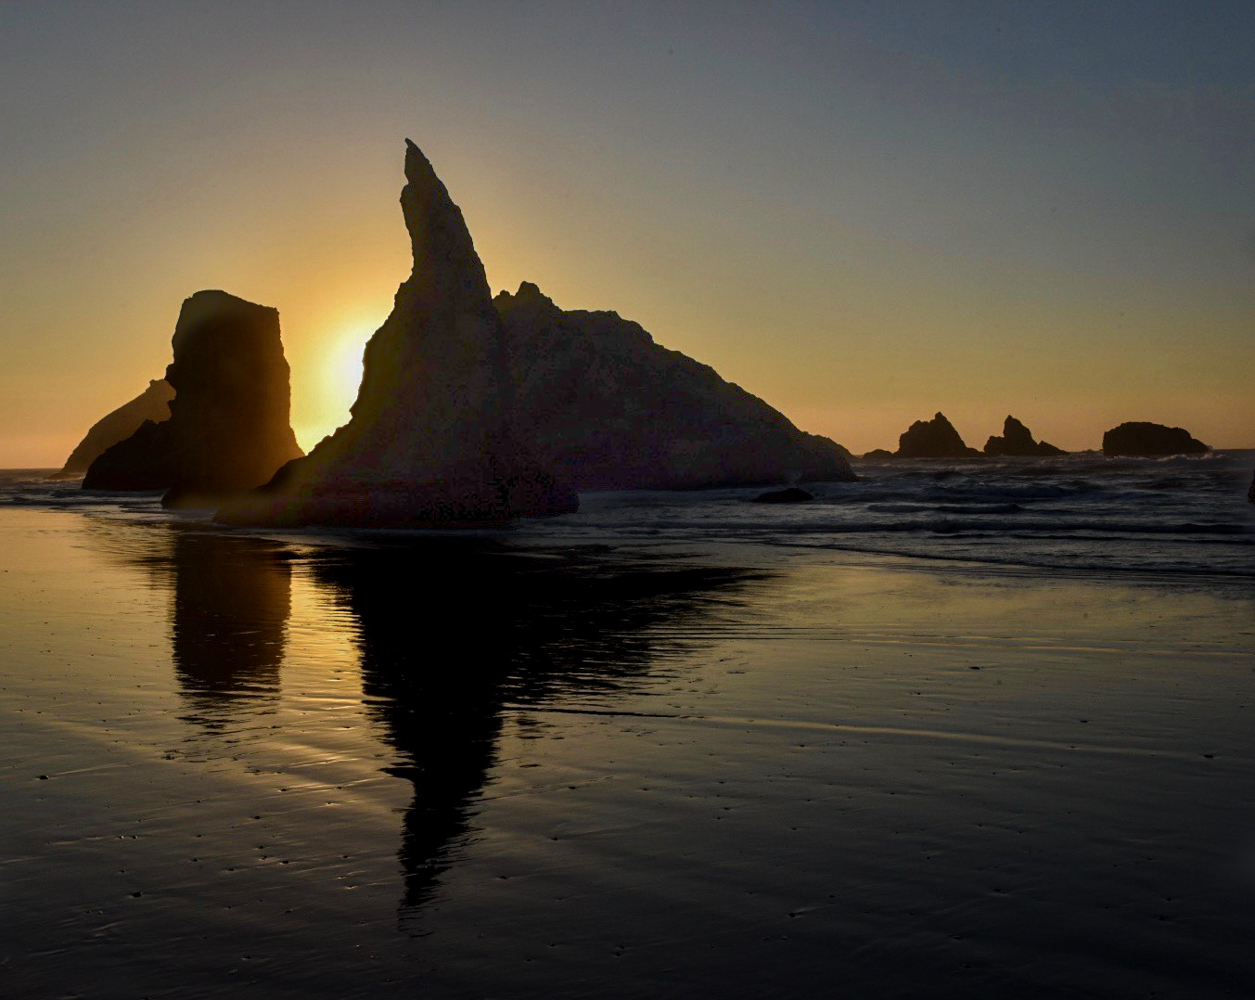 Sun setting on Bandon Beach